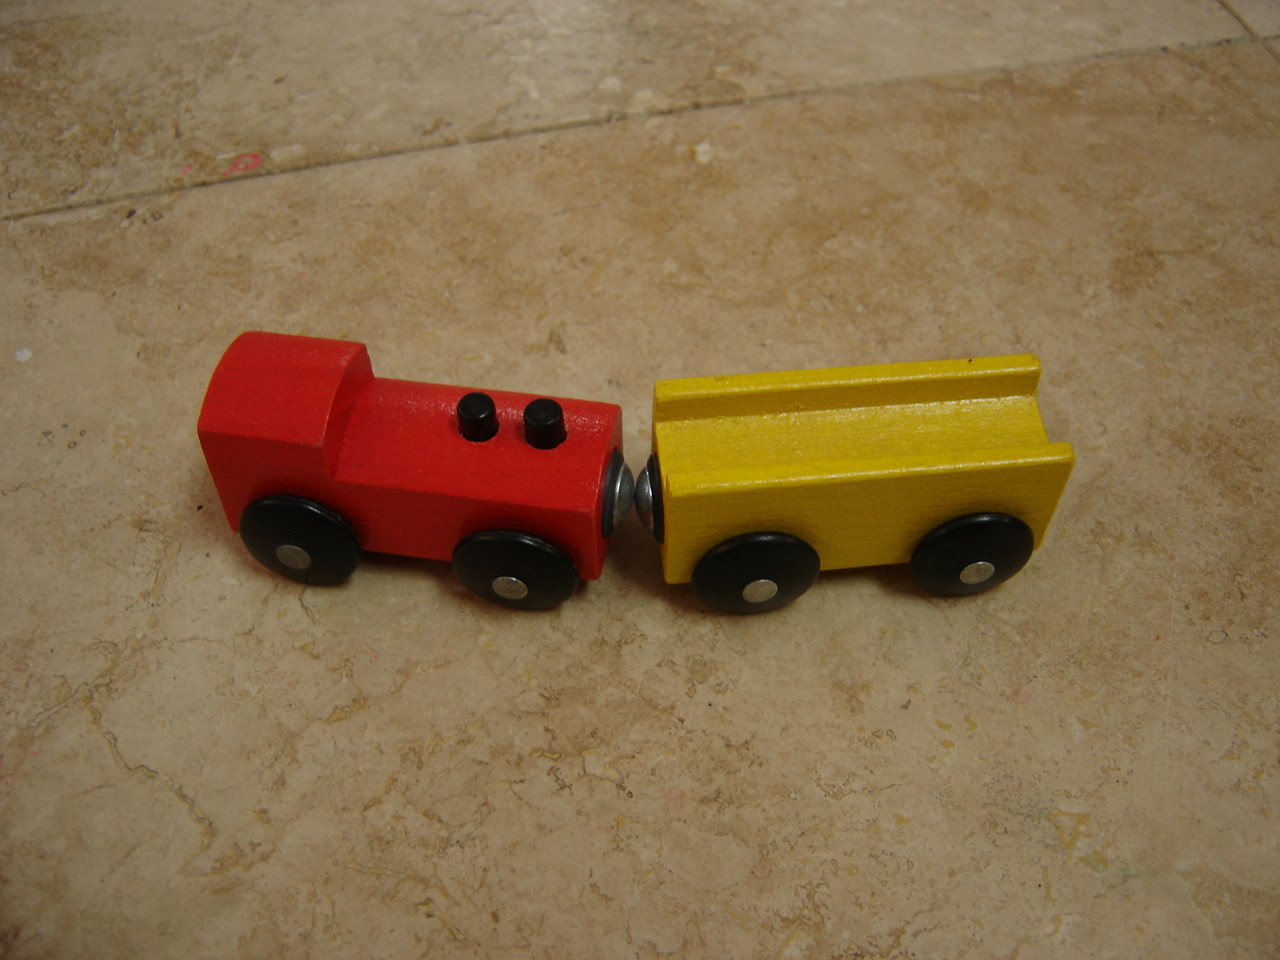 ikea wooden train red and yellow car set_193731c